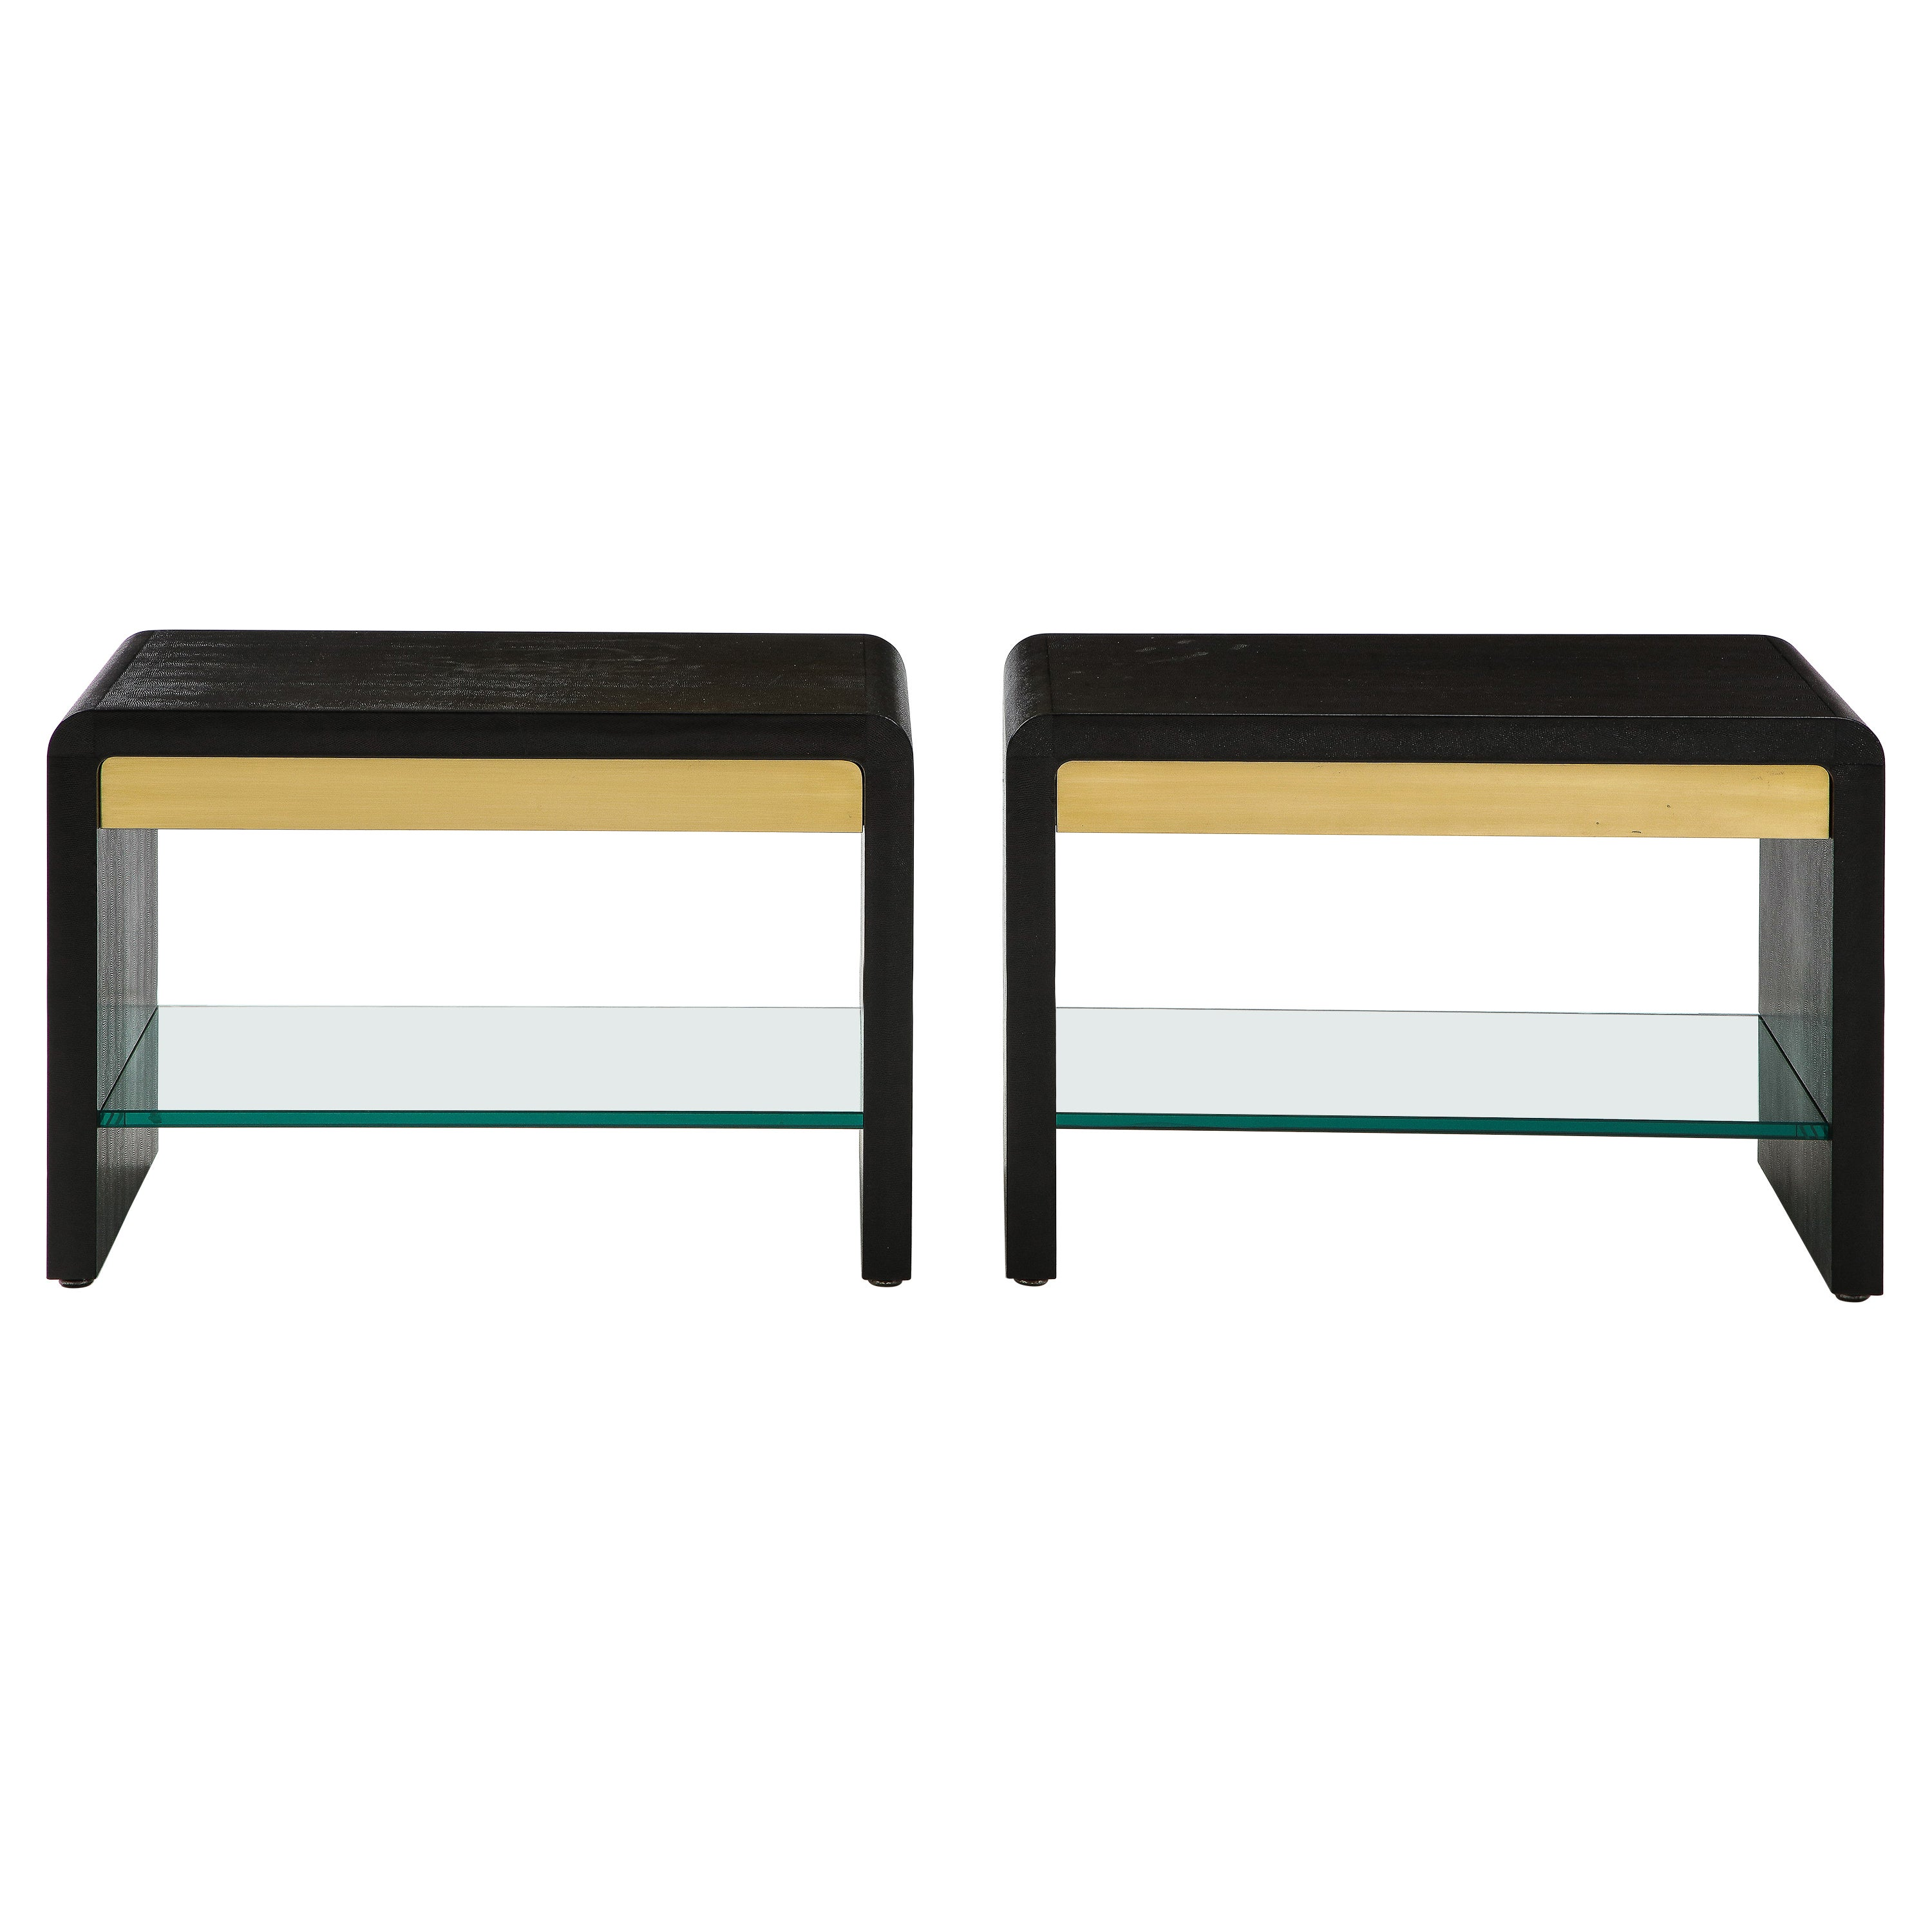 Karl Springer Rare Pair of Waterfall Side Tables in Black Lizard Leather, 1970s